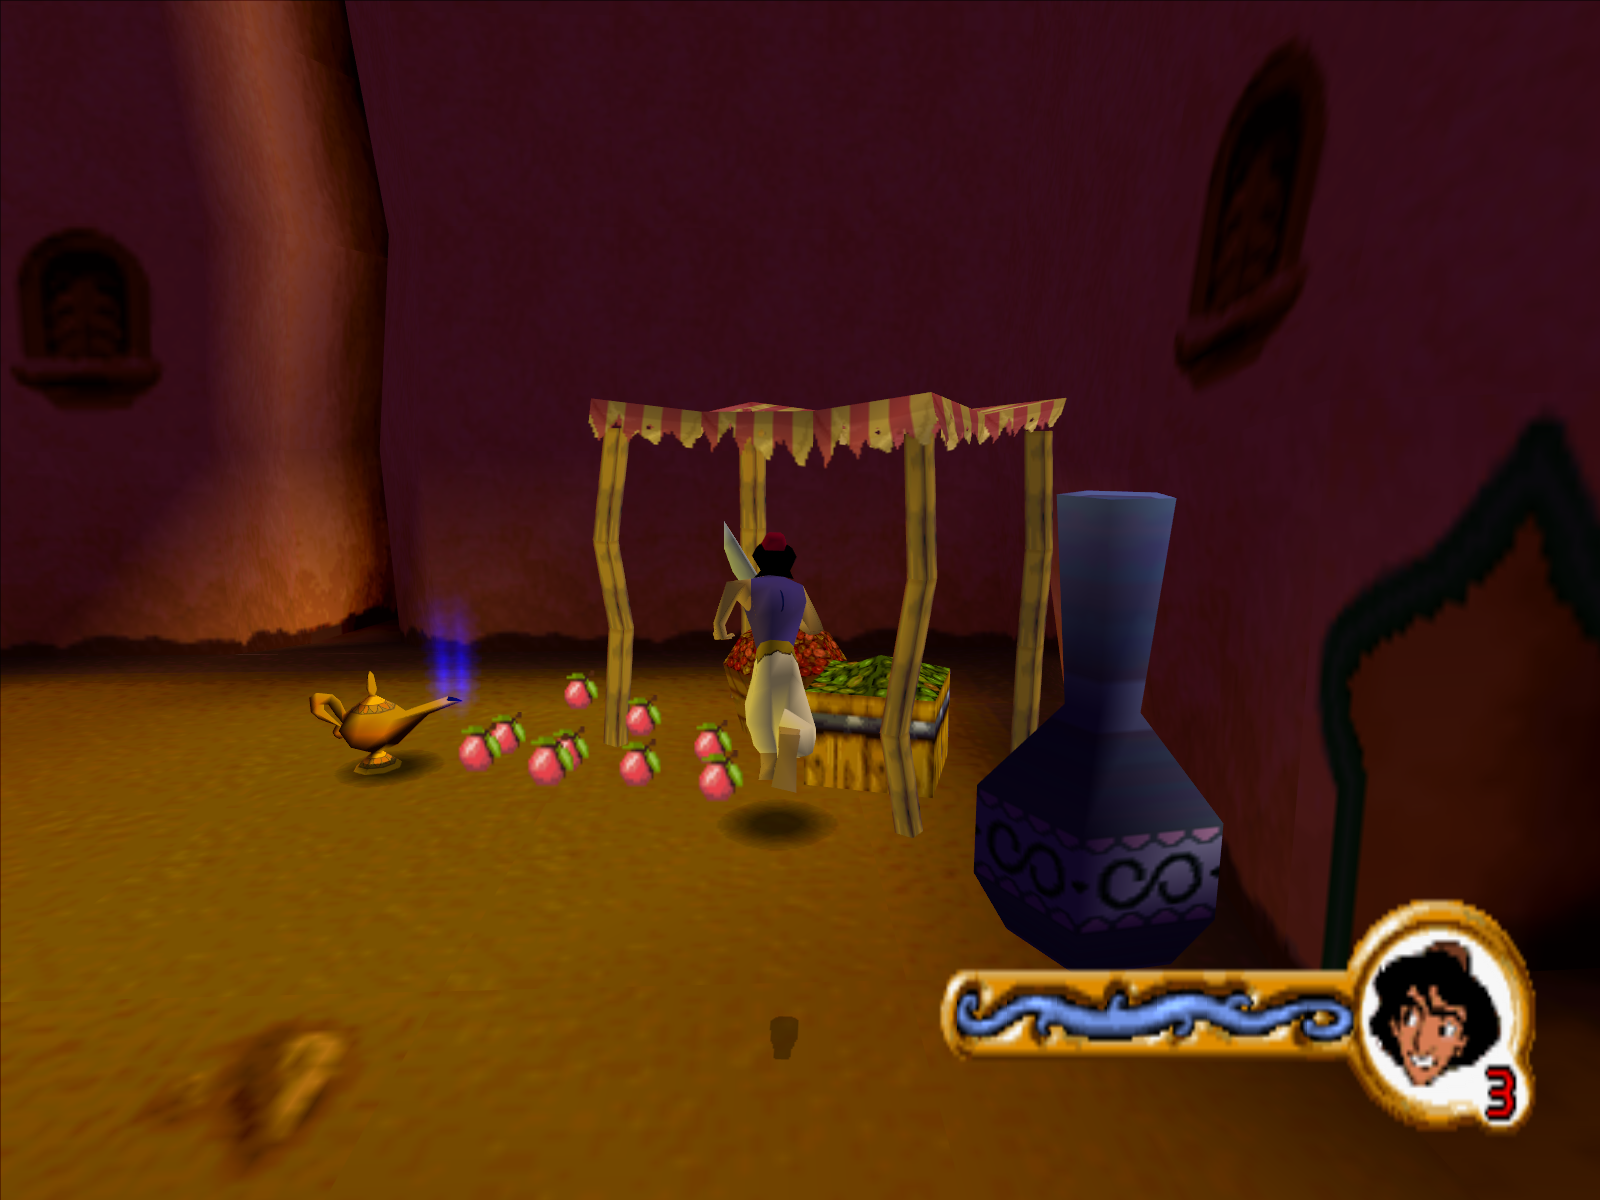 Disney's Aladdin in Nasira's Revenge Windows Get those apples to toss them at enemies or just to cause a distraction.